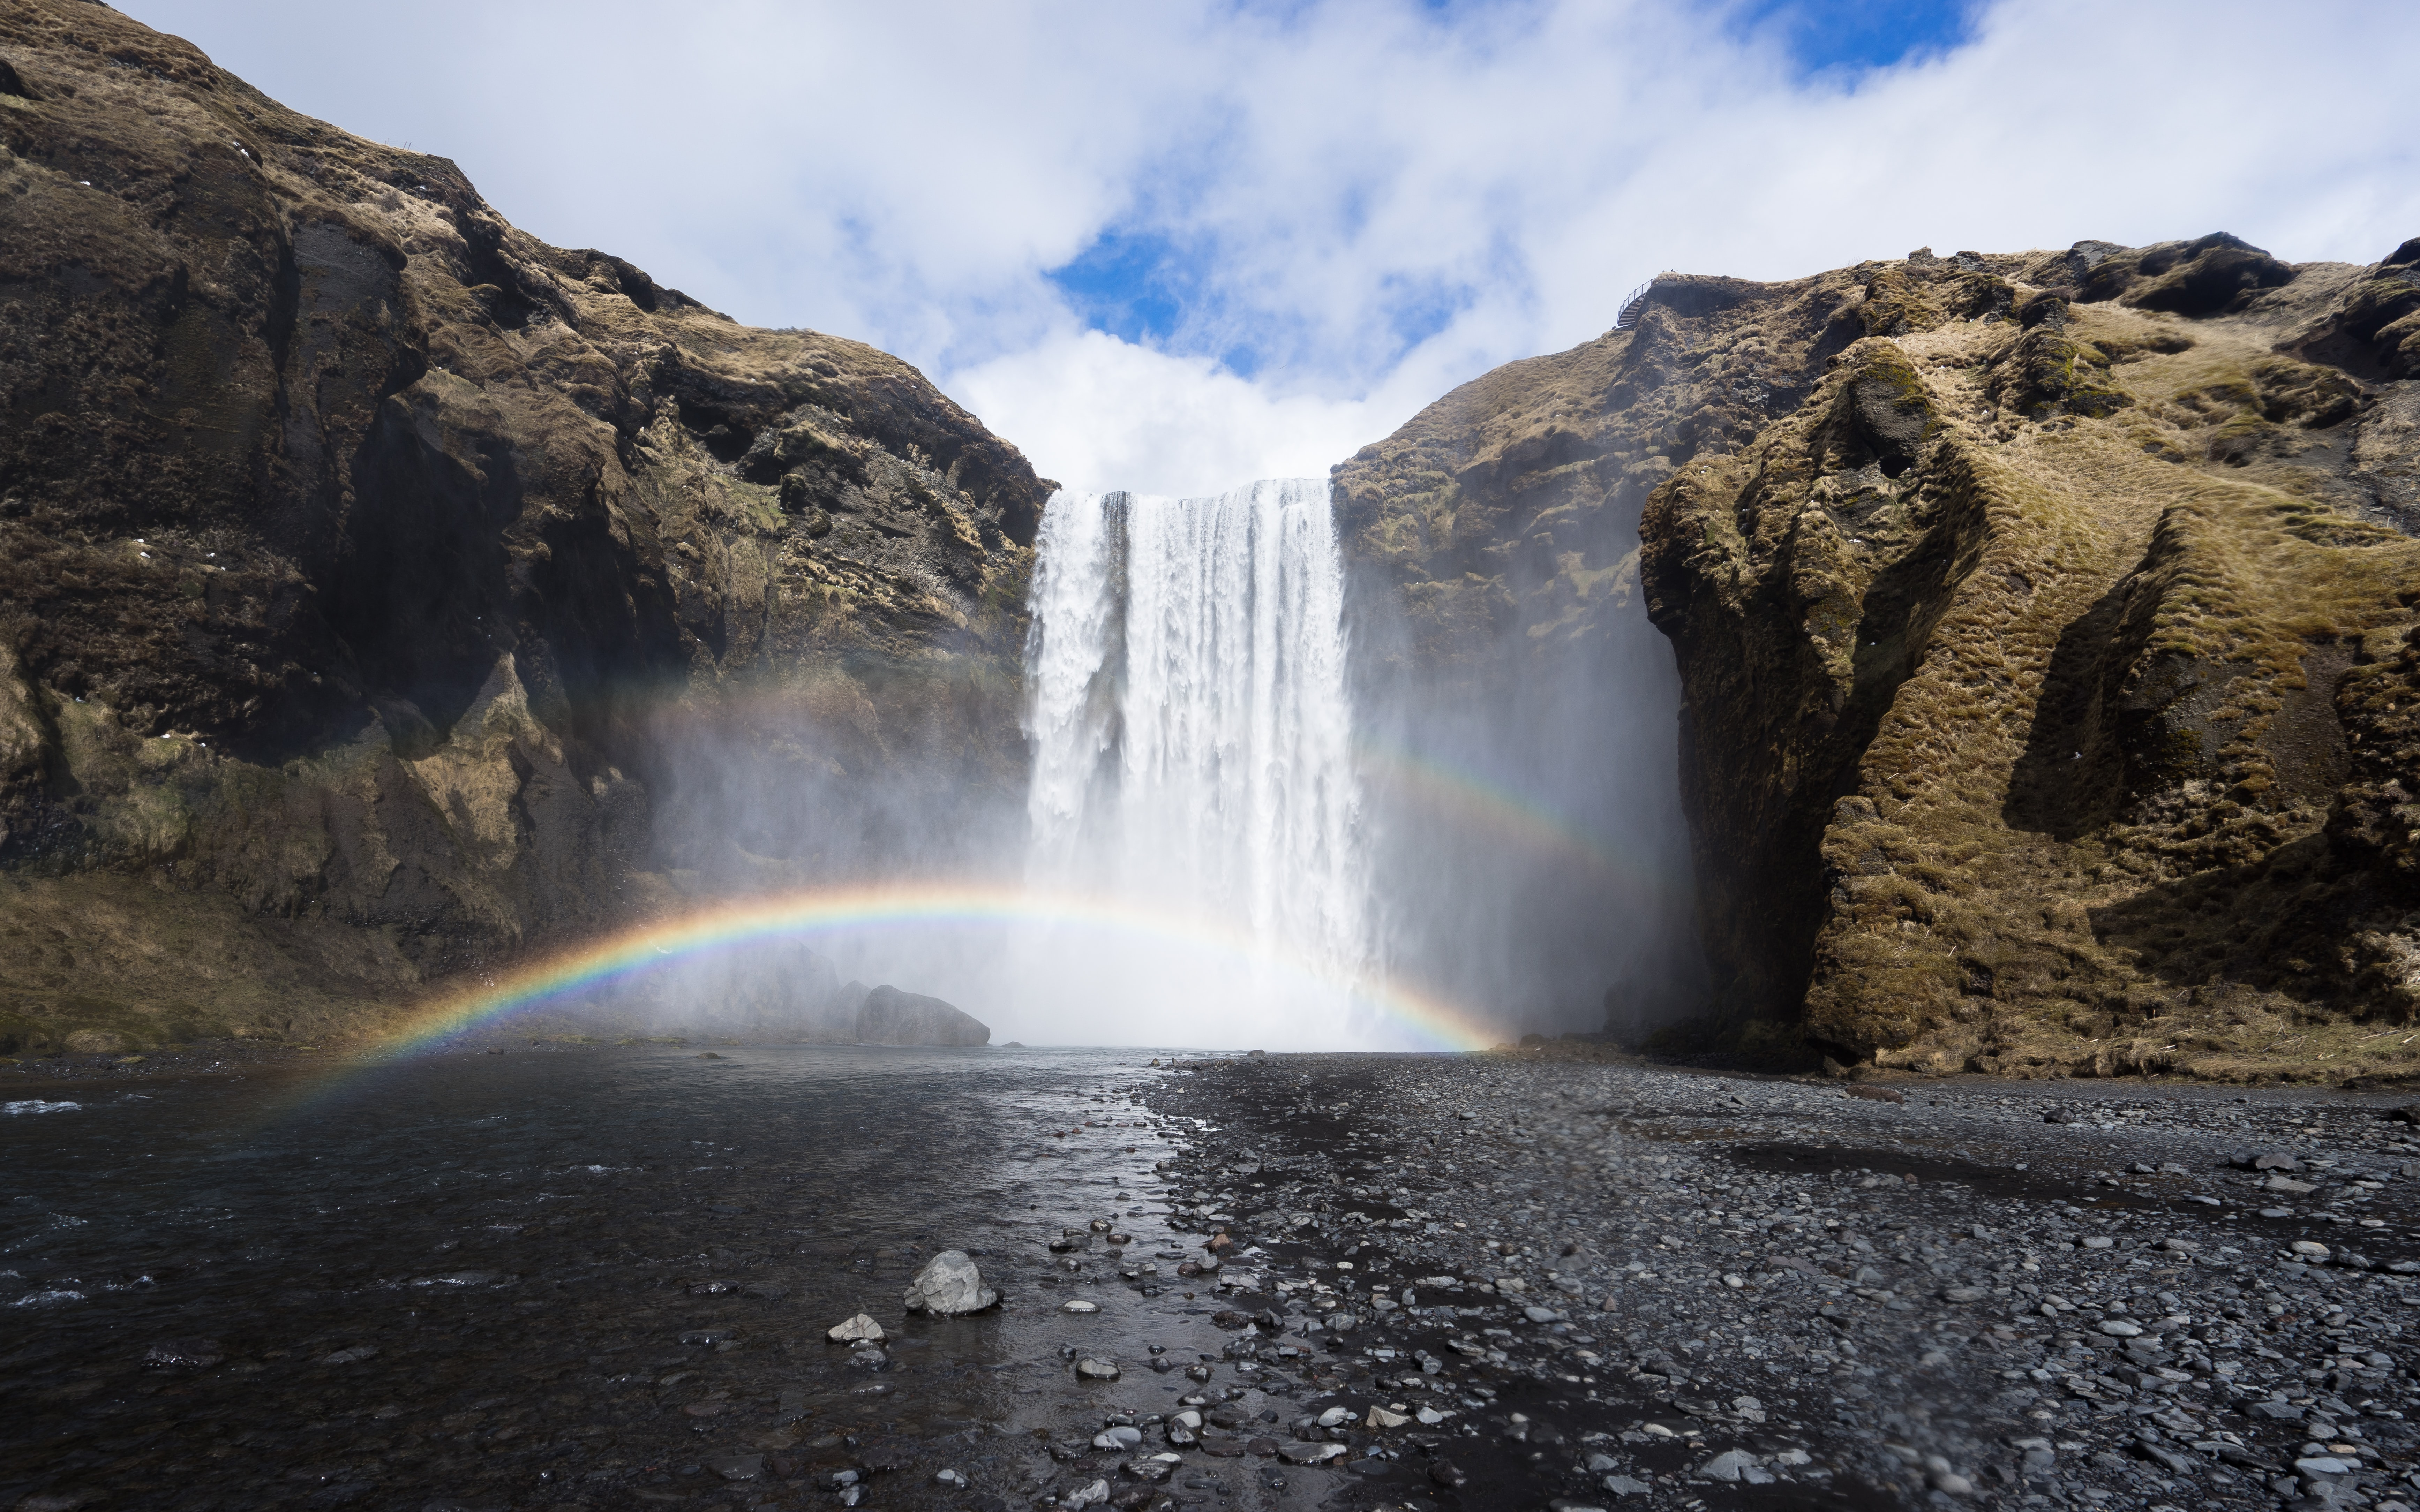 A magnificent shot of a waterfall tumbling down from a rock with a small rainbow in the spraying water